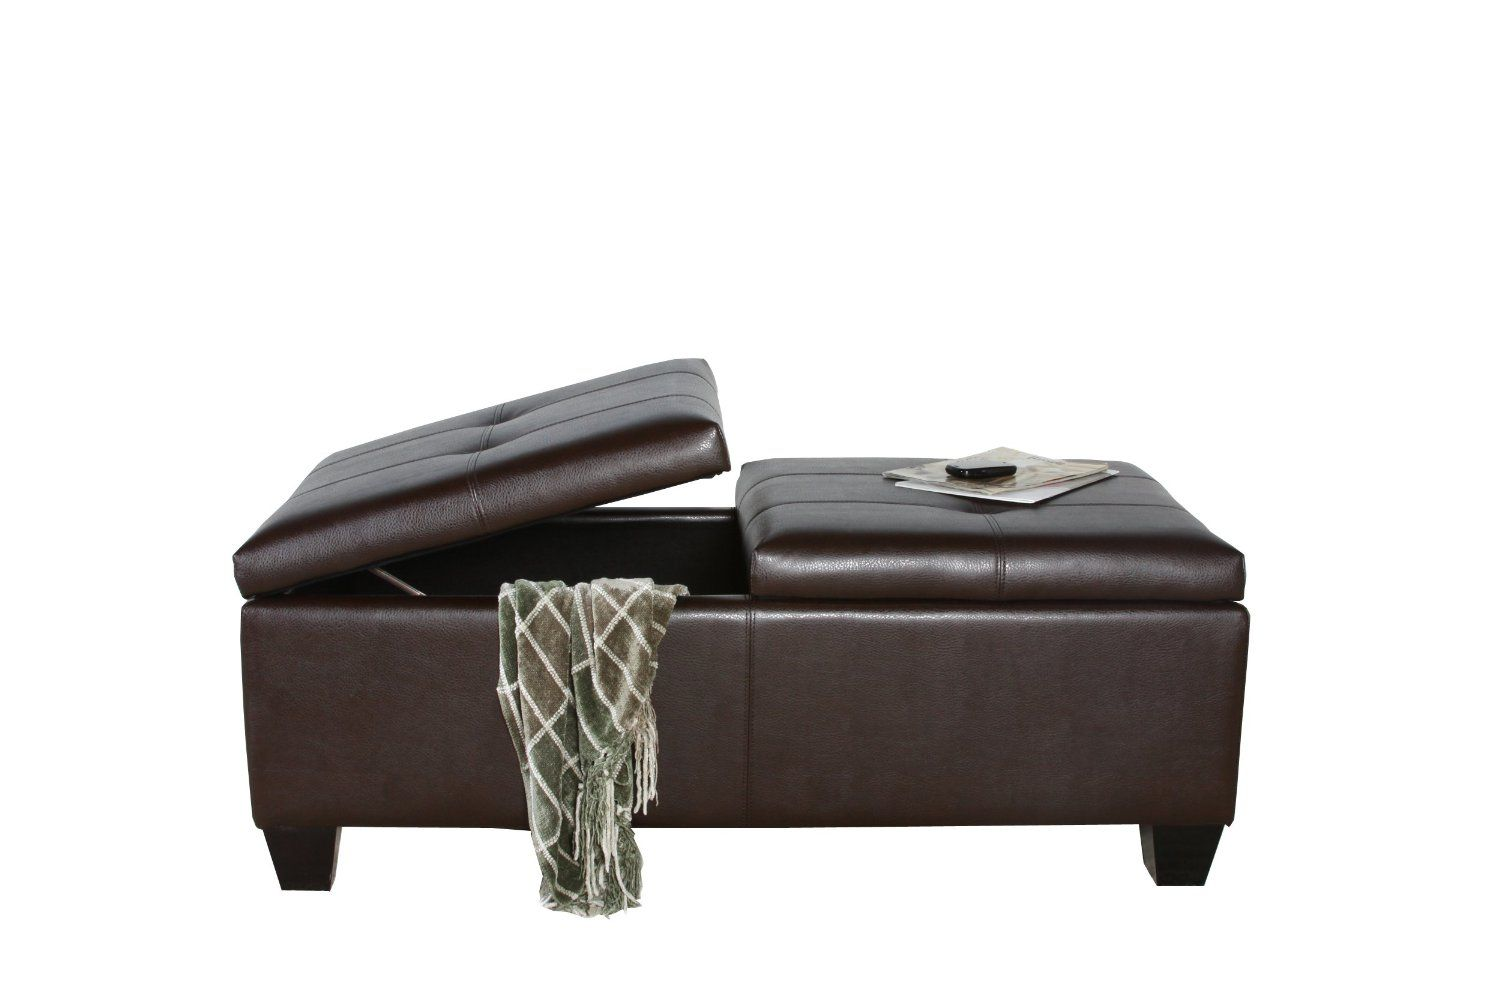 Amazon.com: Best Selling Alfred Brown Leather Storage Ottoman: Kitchen &  Dining | FL Addition | Pinterest - Amazon.com: Best Selling Alfred Brown Leather Storage Ottoman